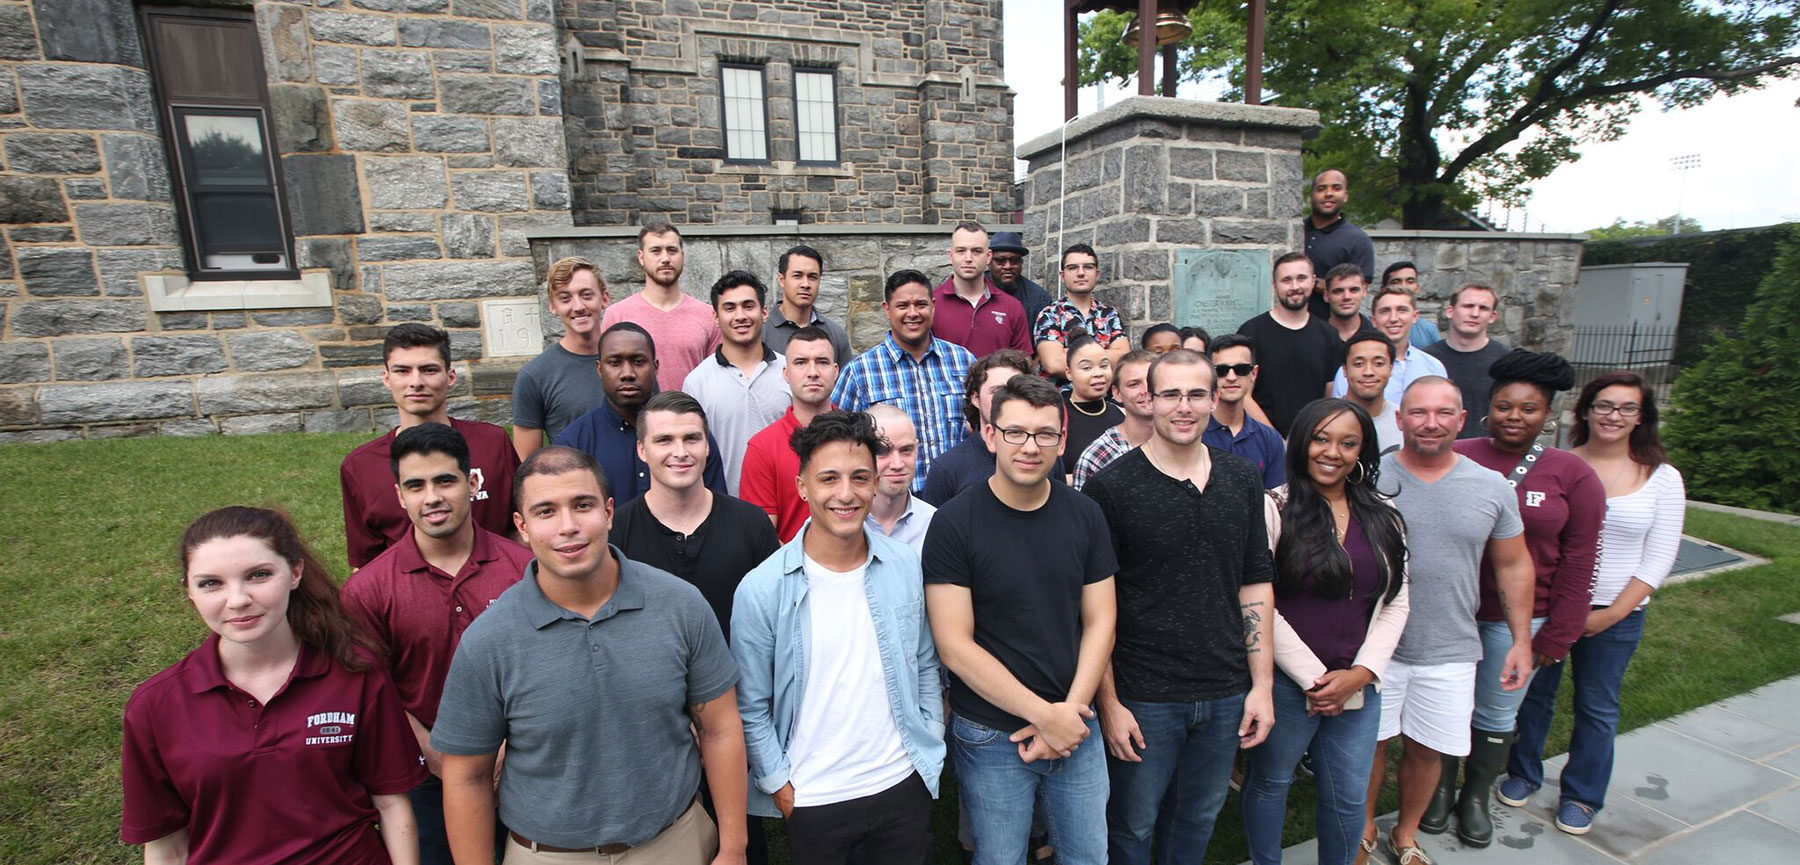 [Fordham Veterans Association Welcomes New Students]